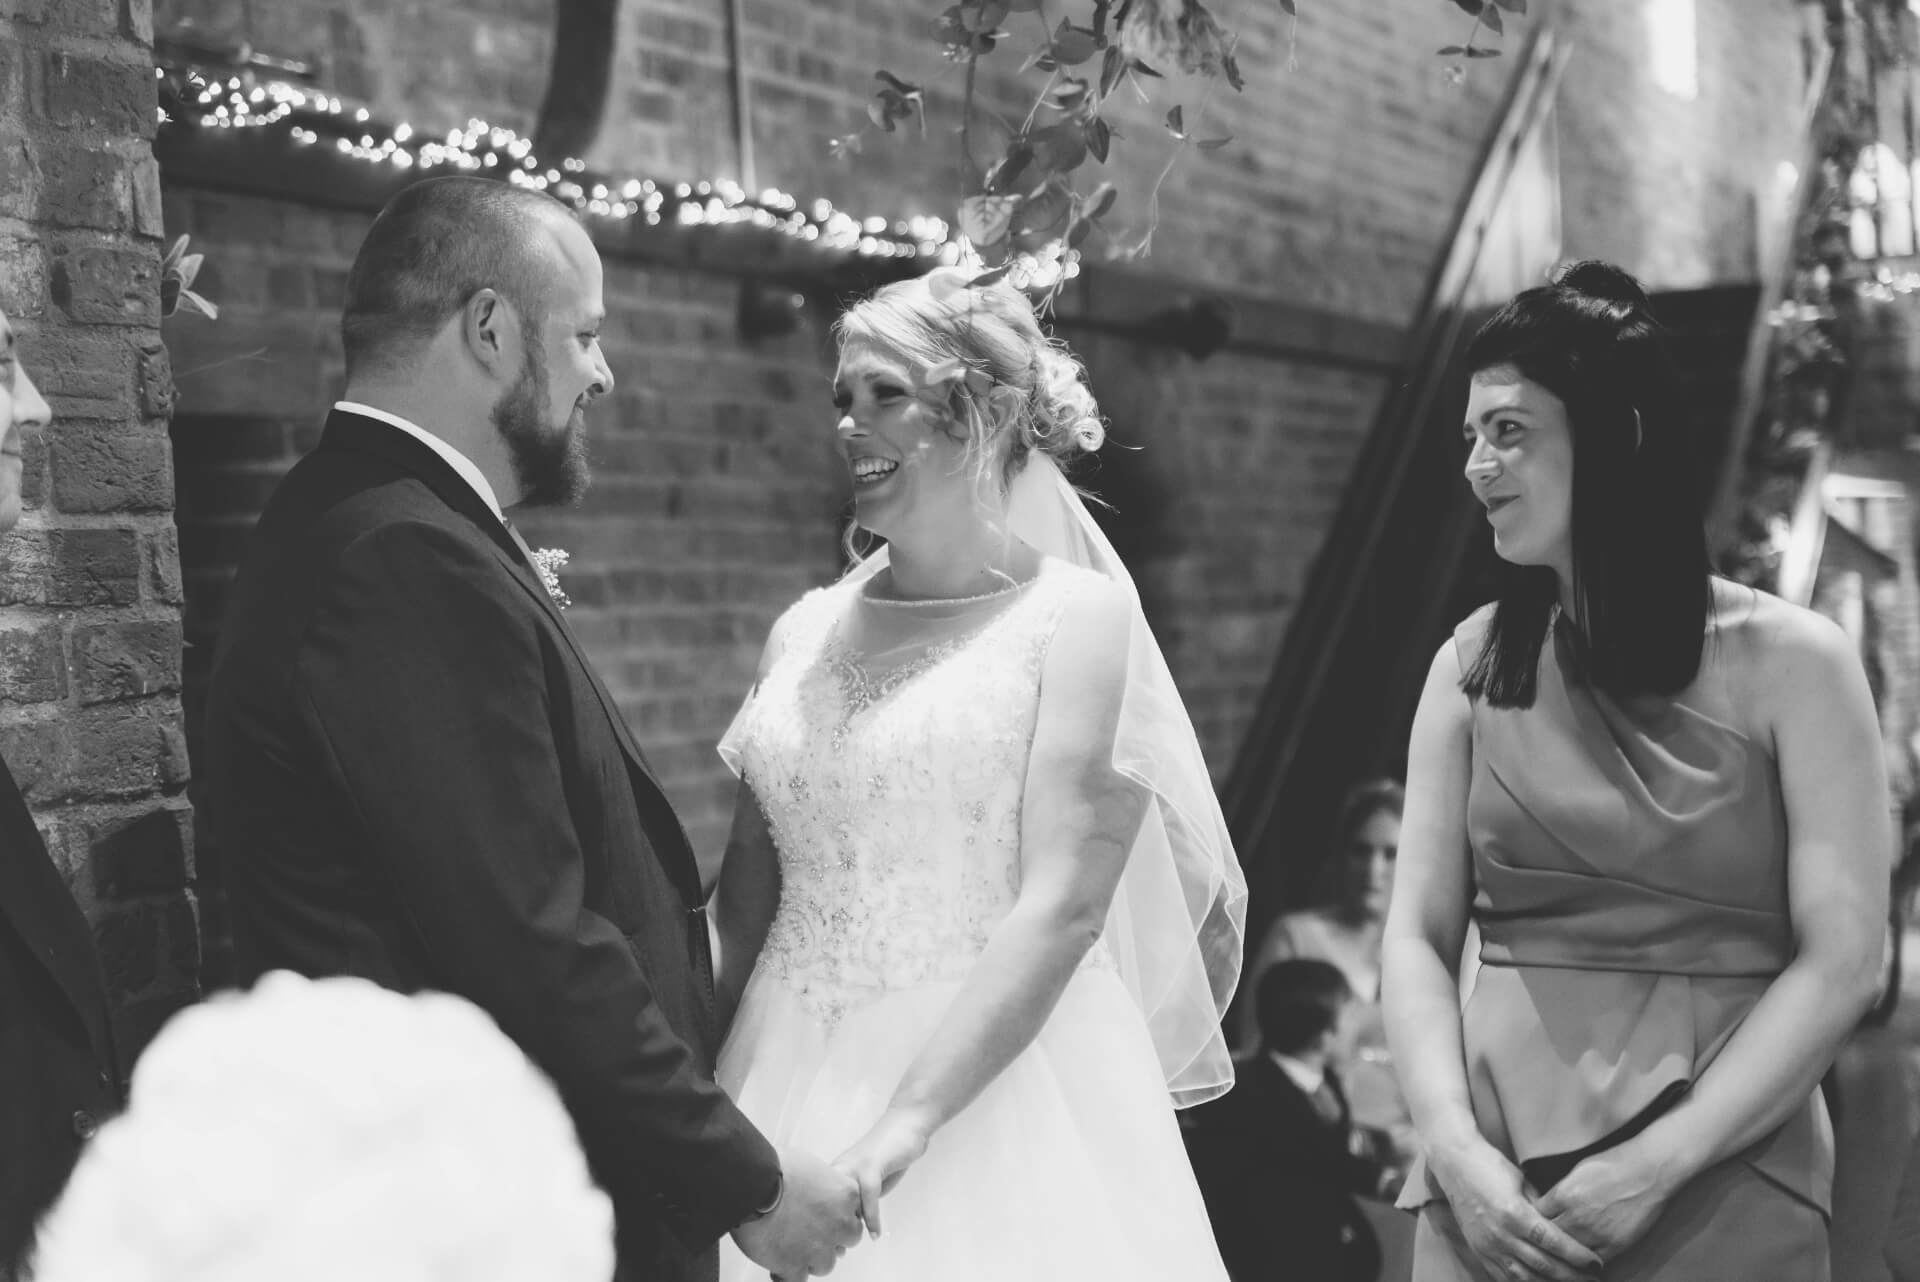 Bride and Groom saying vows during wedding ceremony - natural wedding photography at Whaplode Manor by Slice of Life